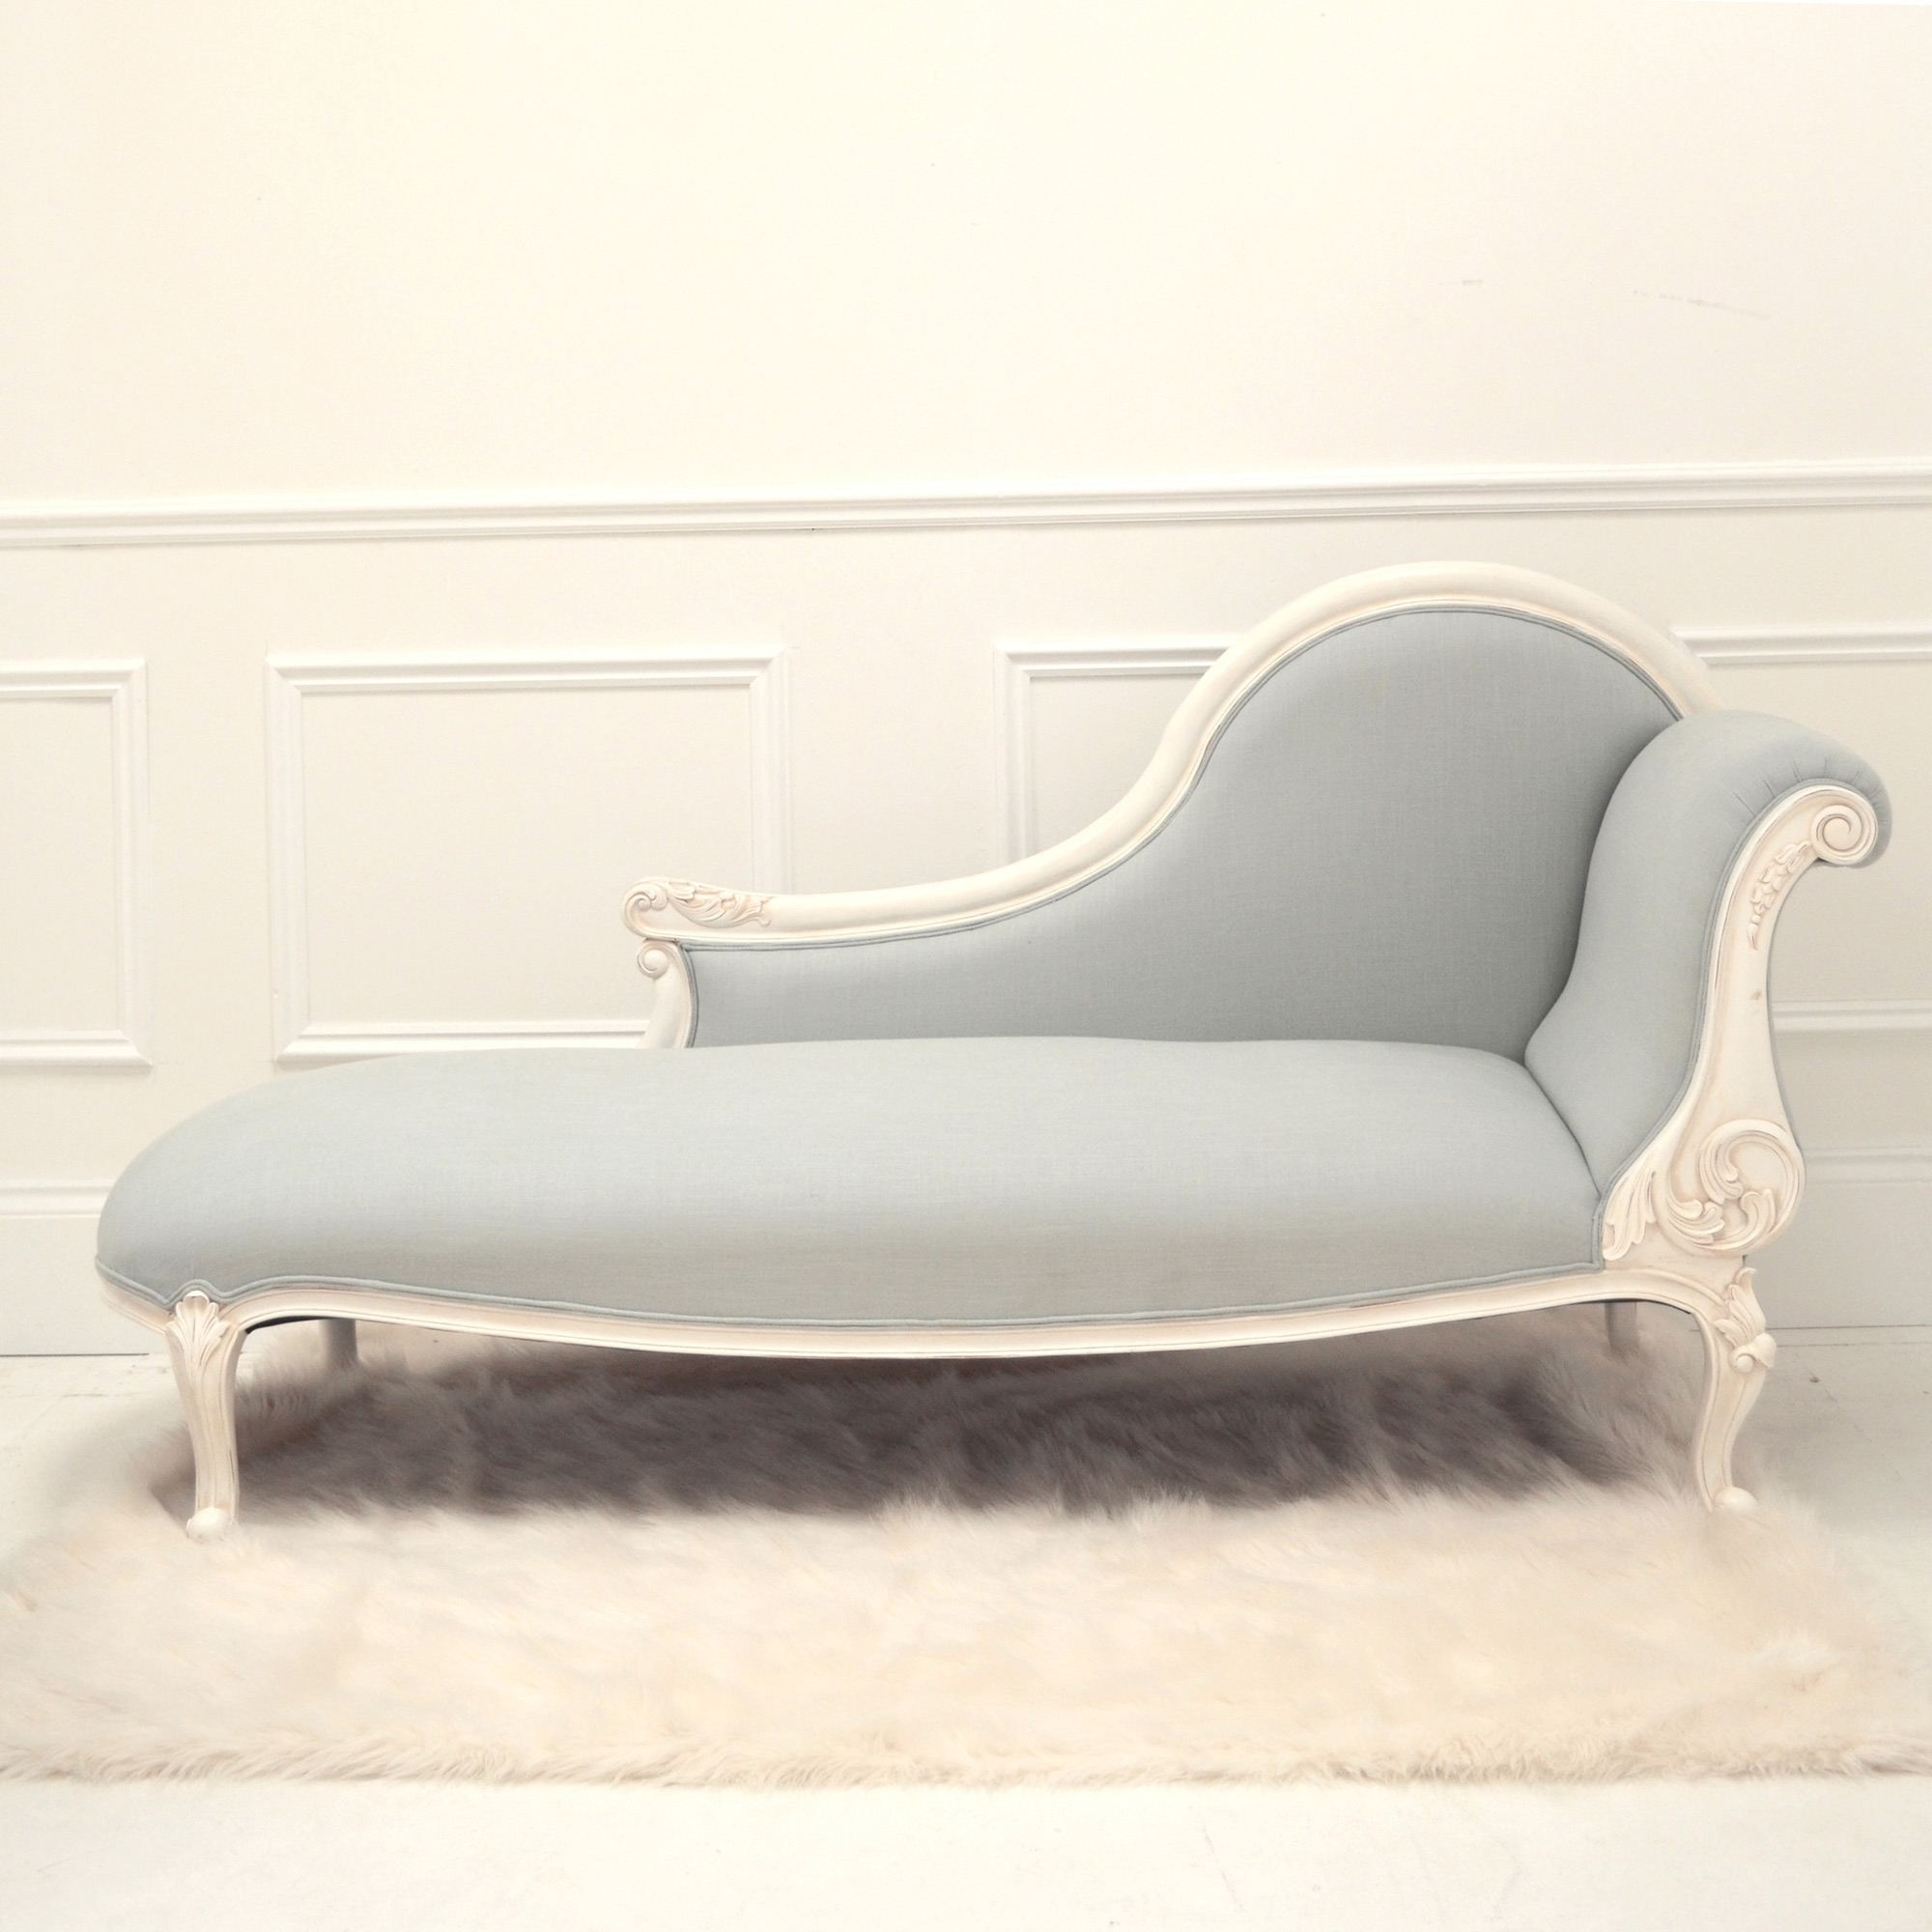 Chaise With Regard To French Country Chaise Lounges (View 5 of 15)